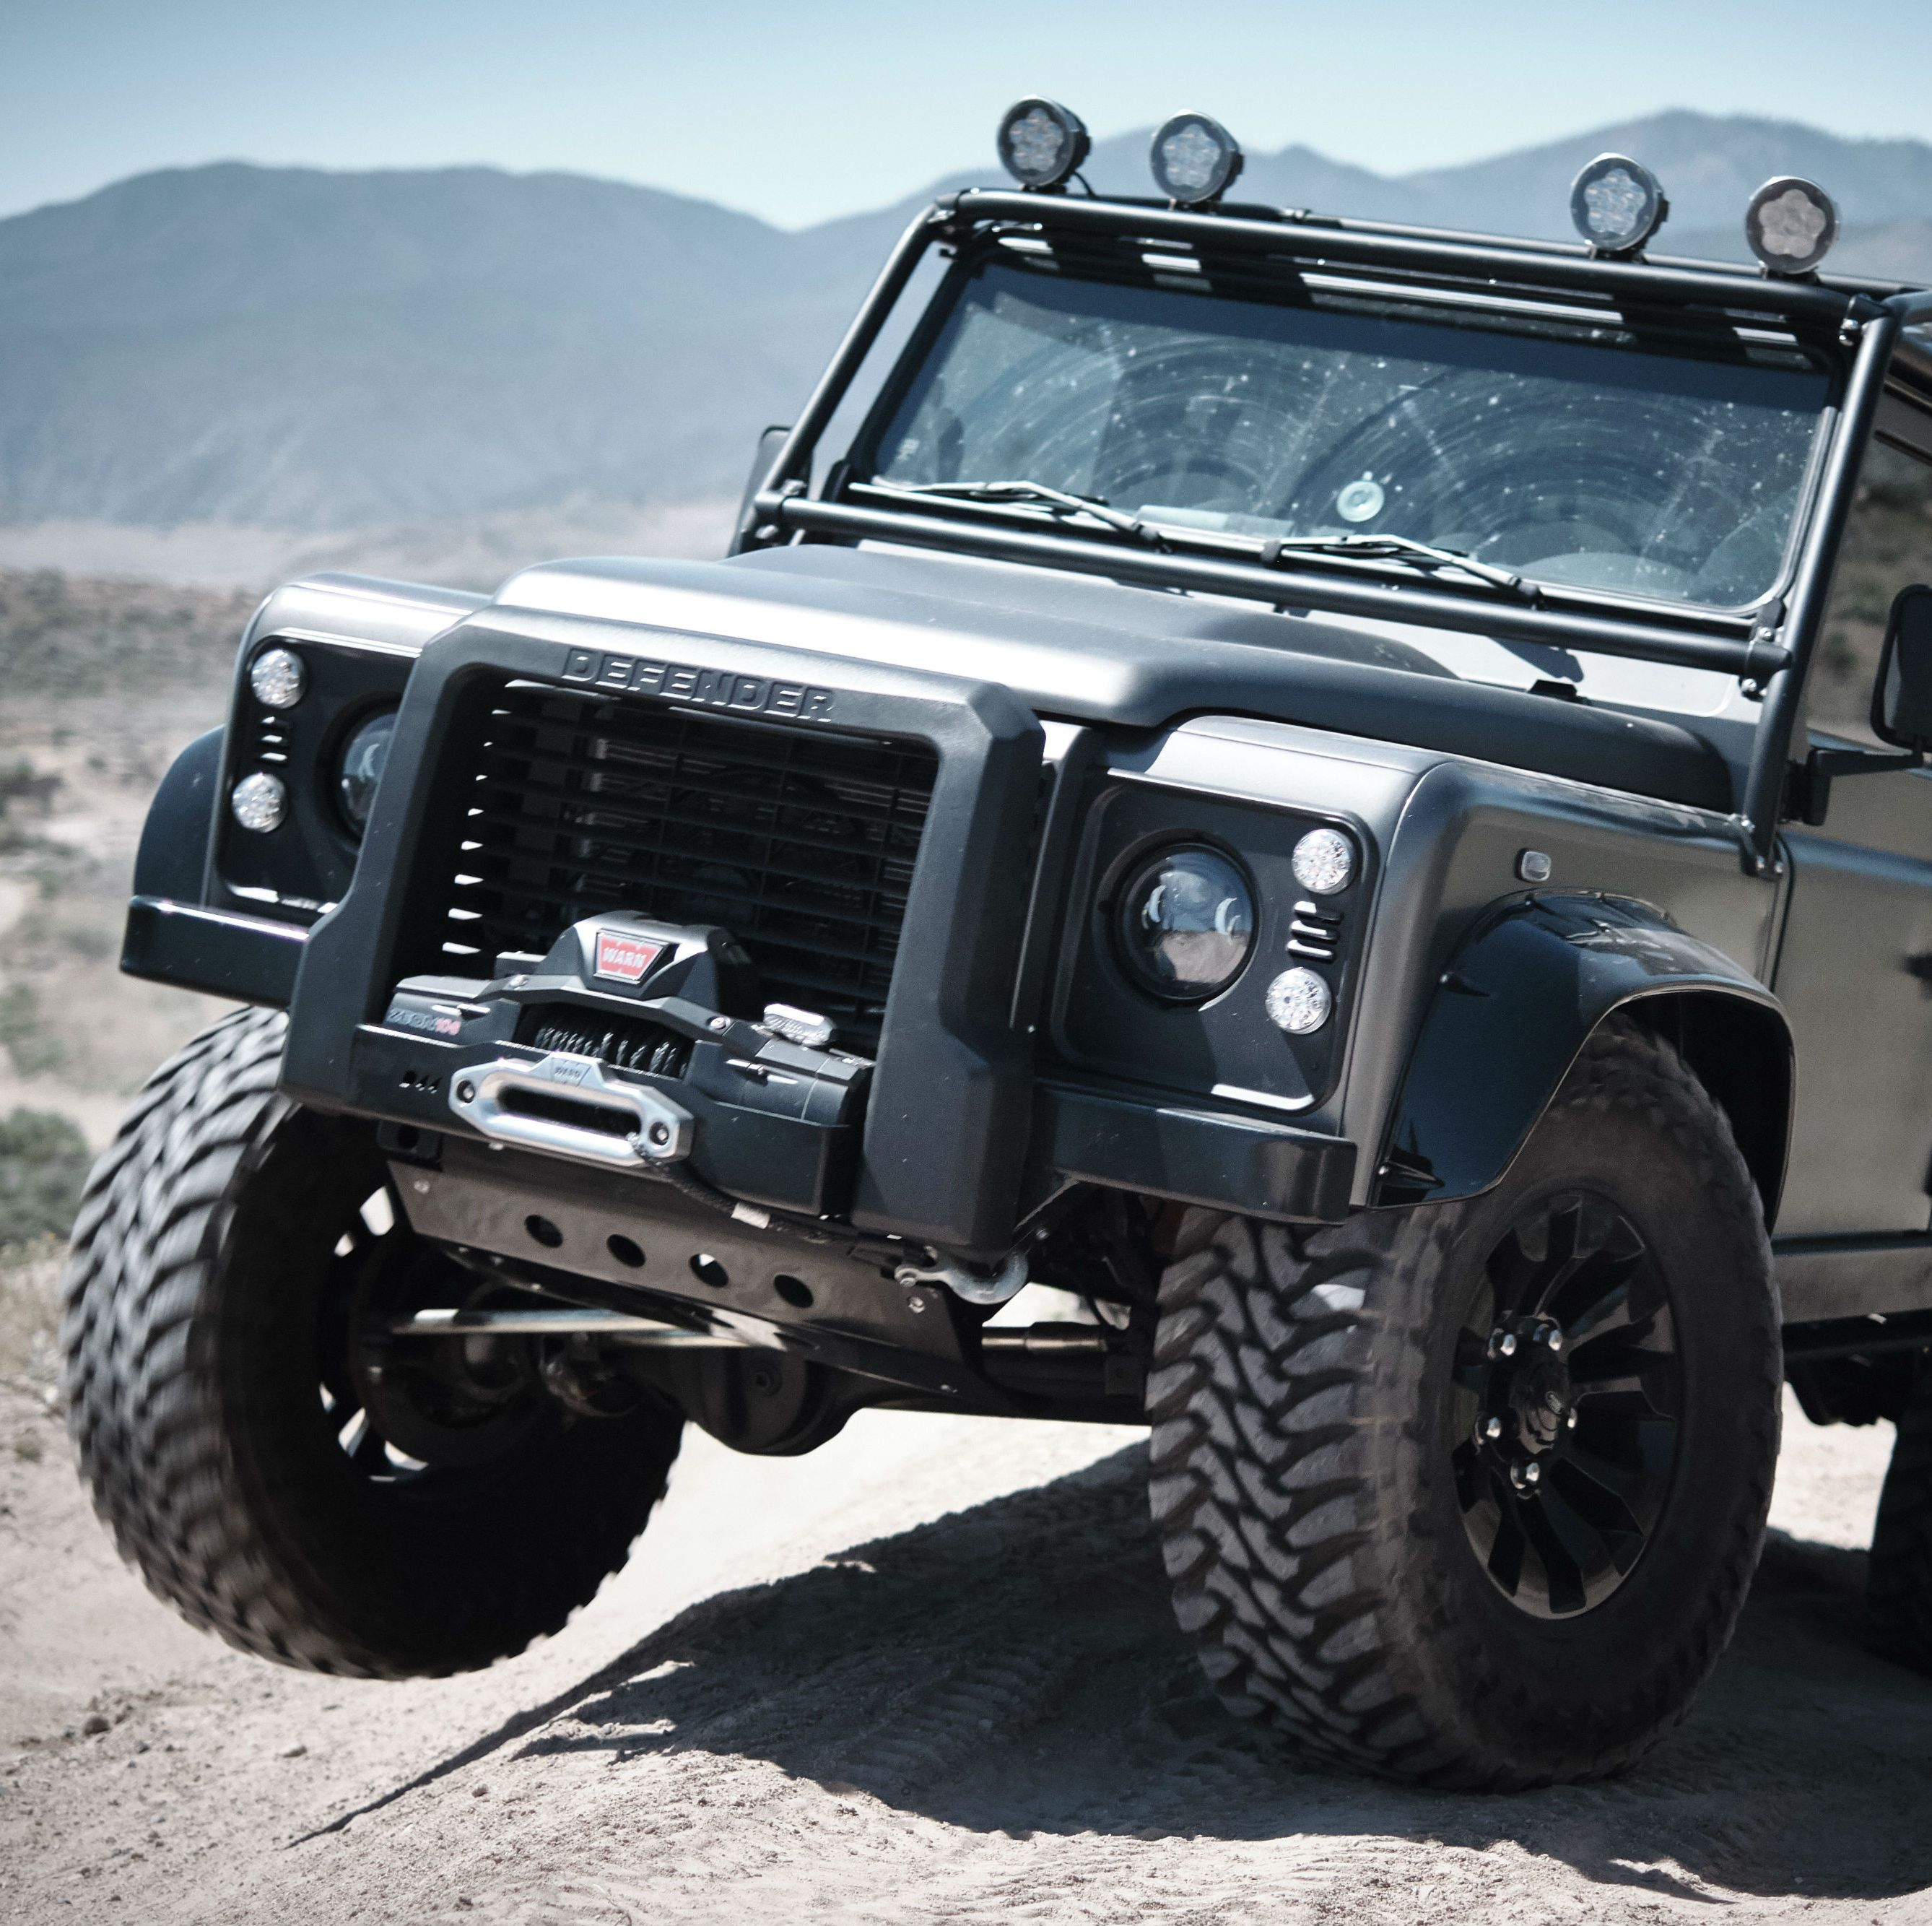 9 Cool Things We Learned Driving the Spectre Land Rover Defender